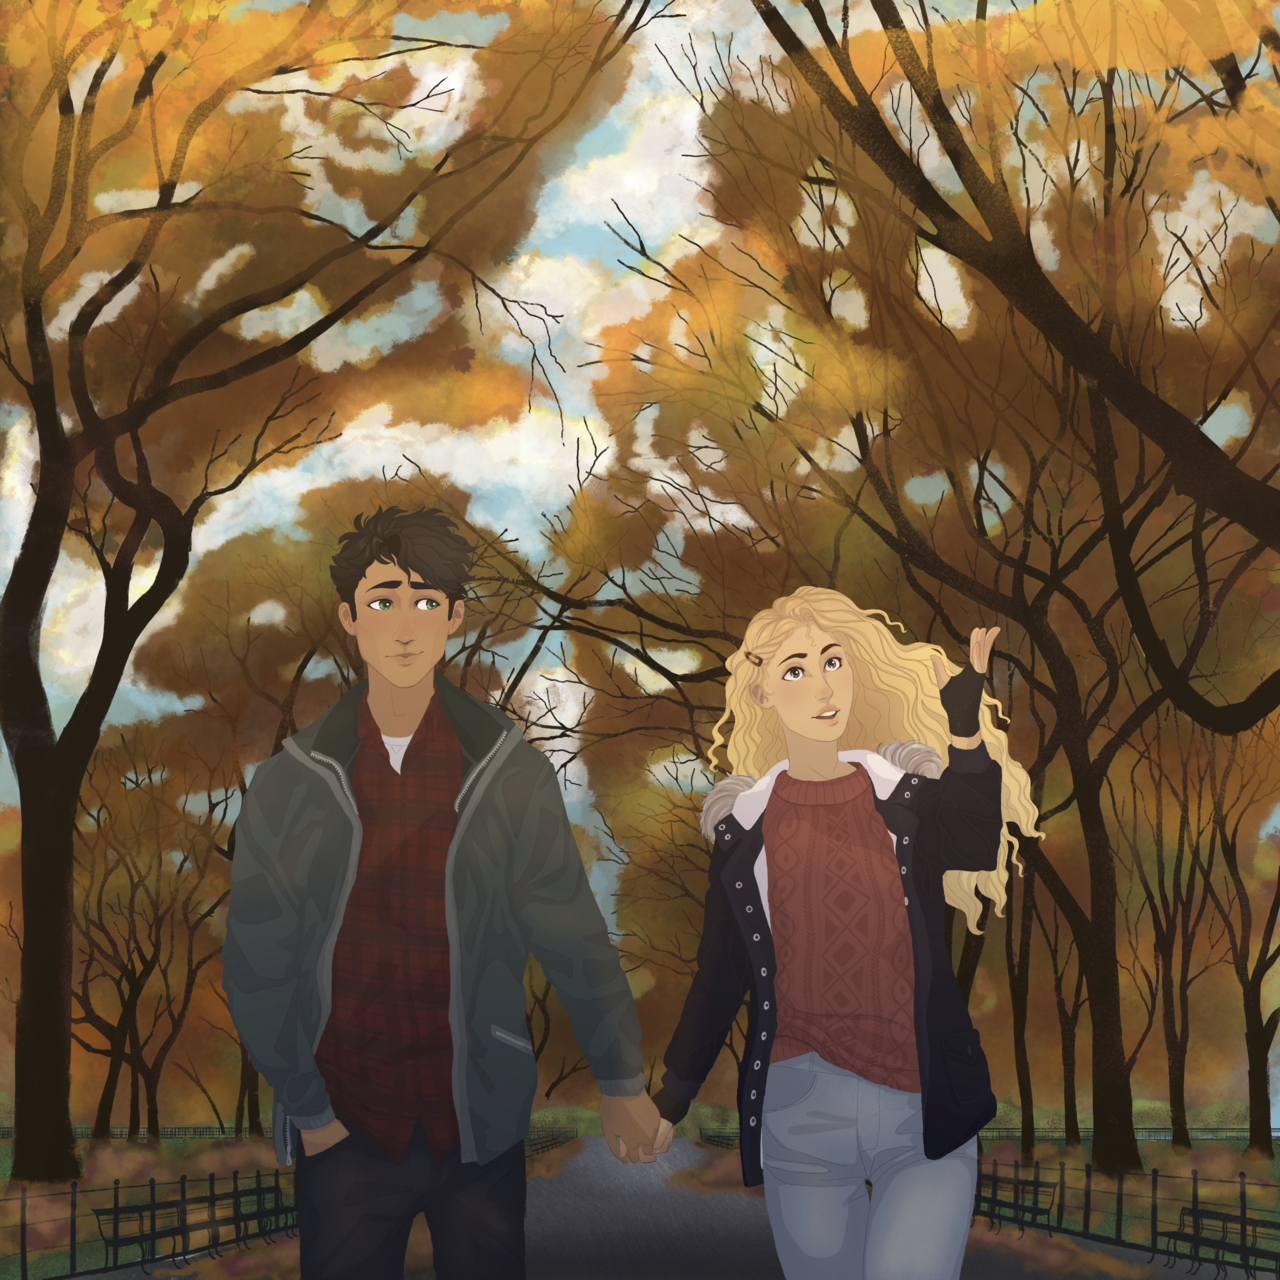 percabeth | Percy Jackson and the Olympians | Know Your Meme